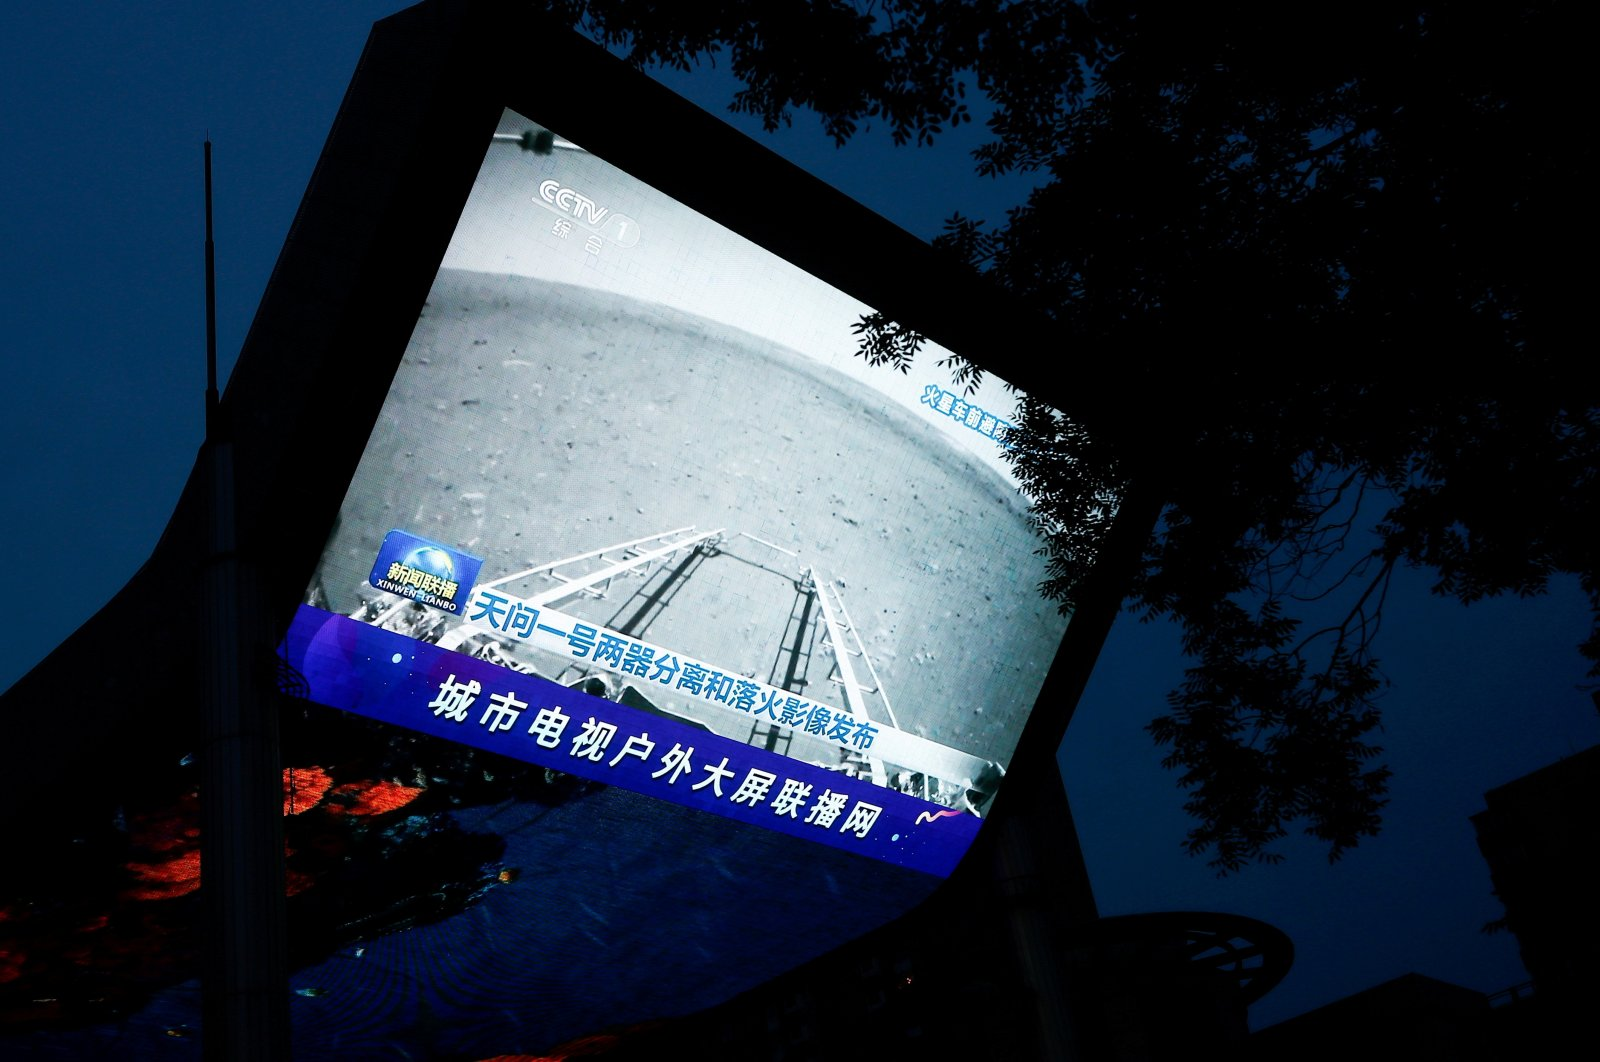 A screen broadcasts a CCTV state media news bulletin, showing an image of Mars taken by Chinese Mars rover Zhurong as part of the Tianwen-1 mission, in Beijing, China, May 19, 2021. (Reuters Photo)